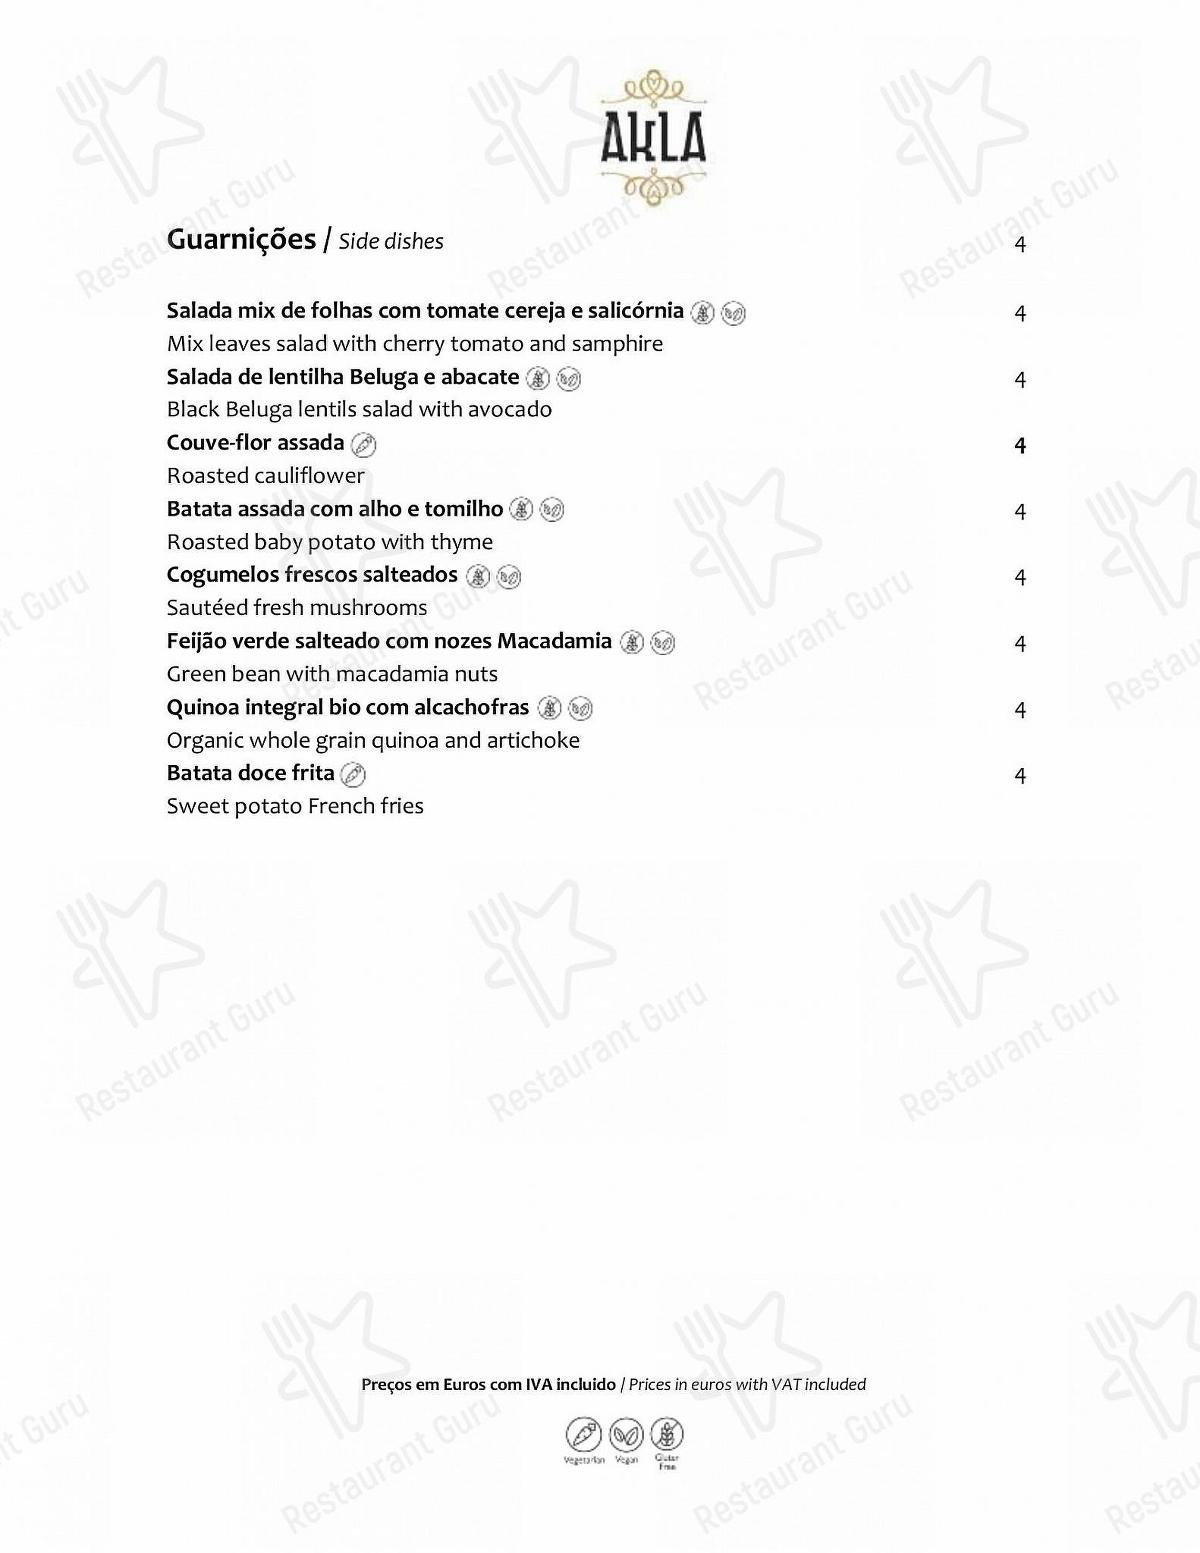 AKLA menu - dishes and beverages